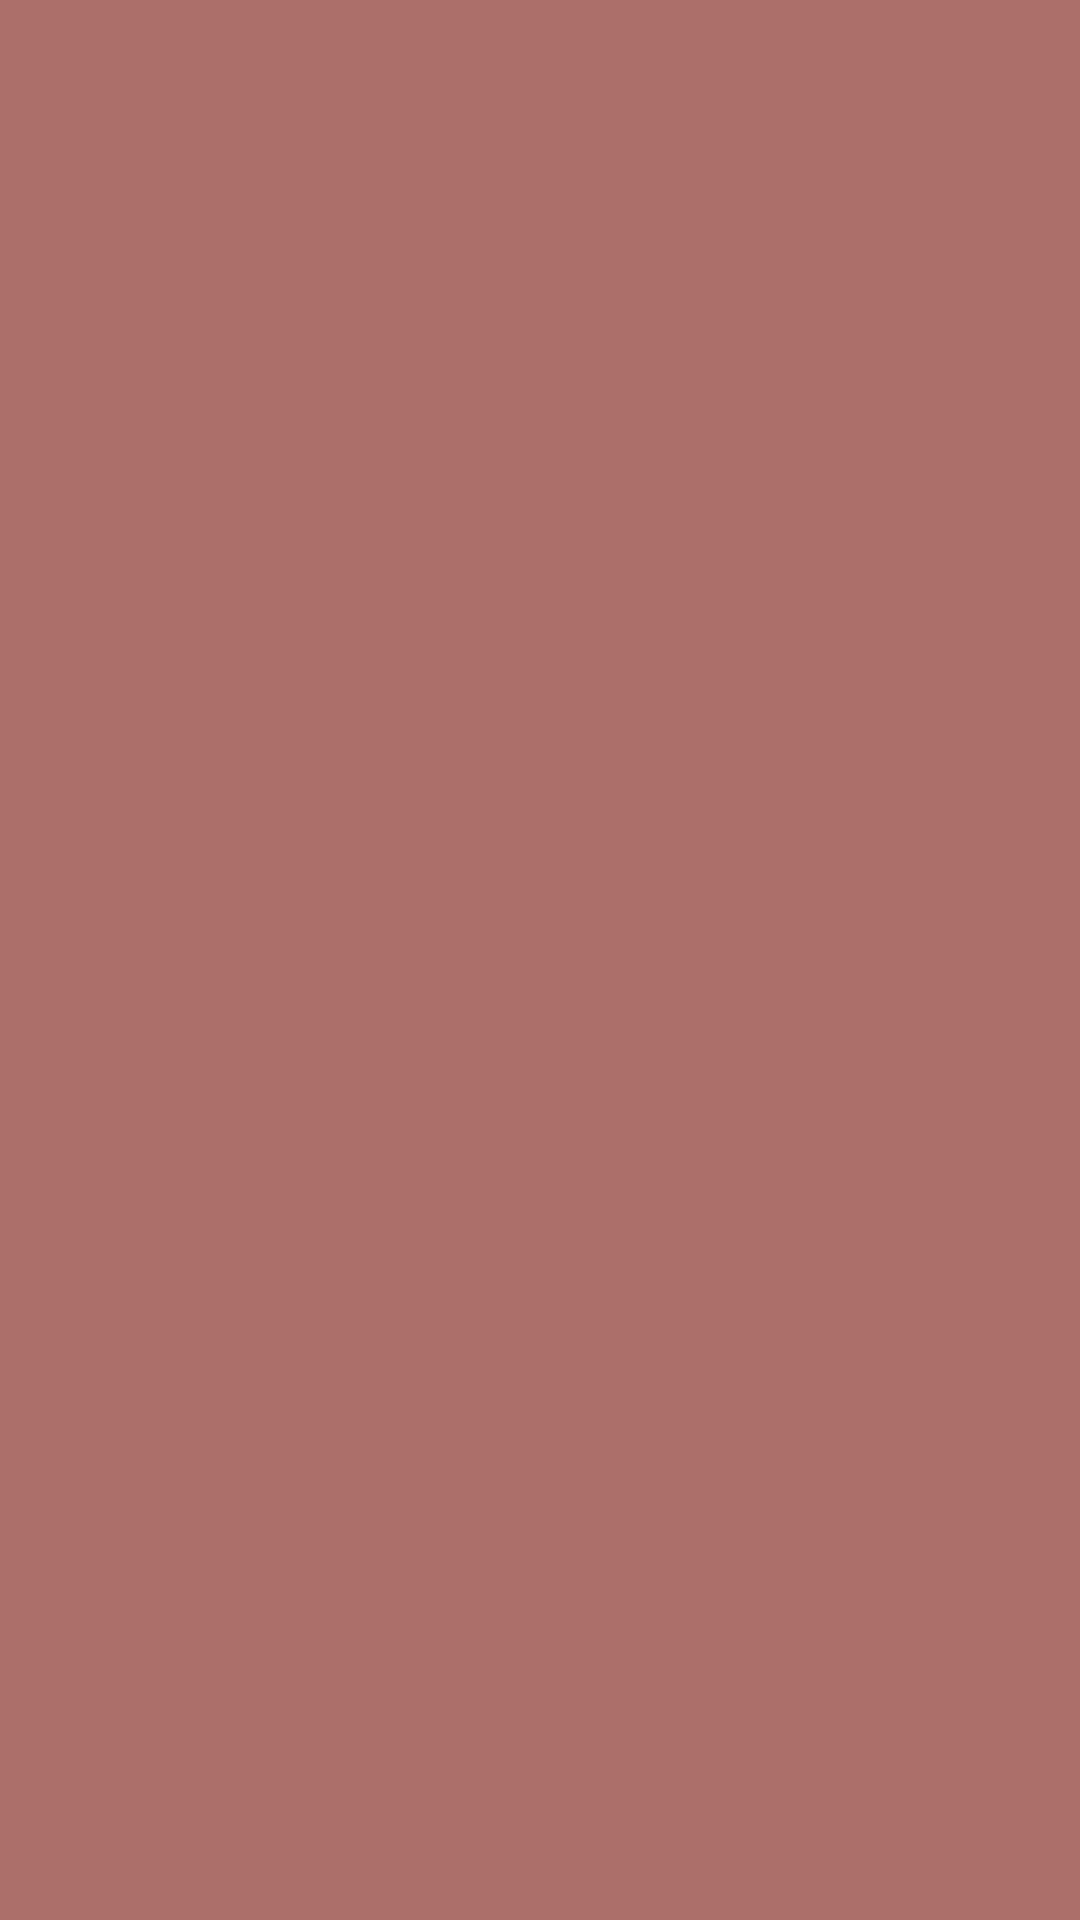 1080x1920 Copper Penny Solid Color Background